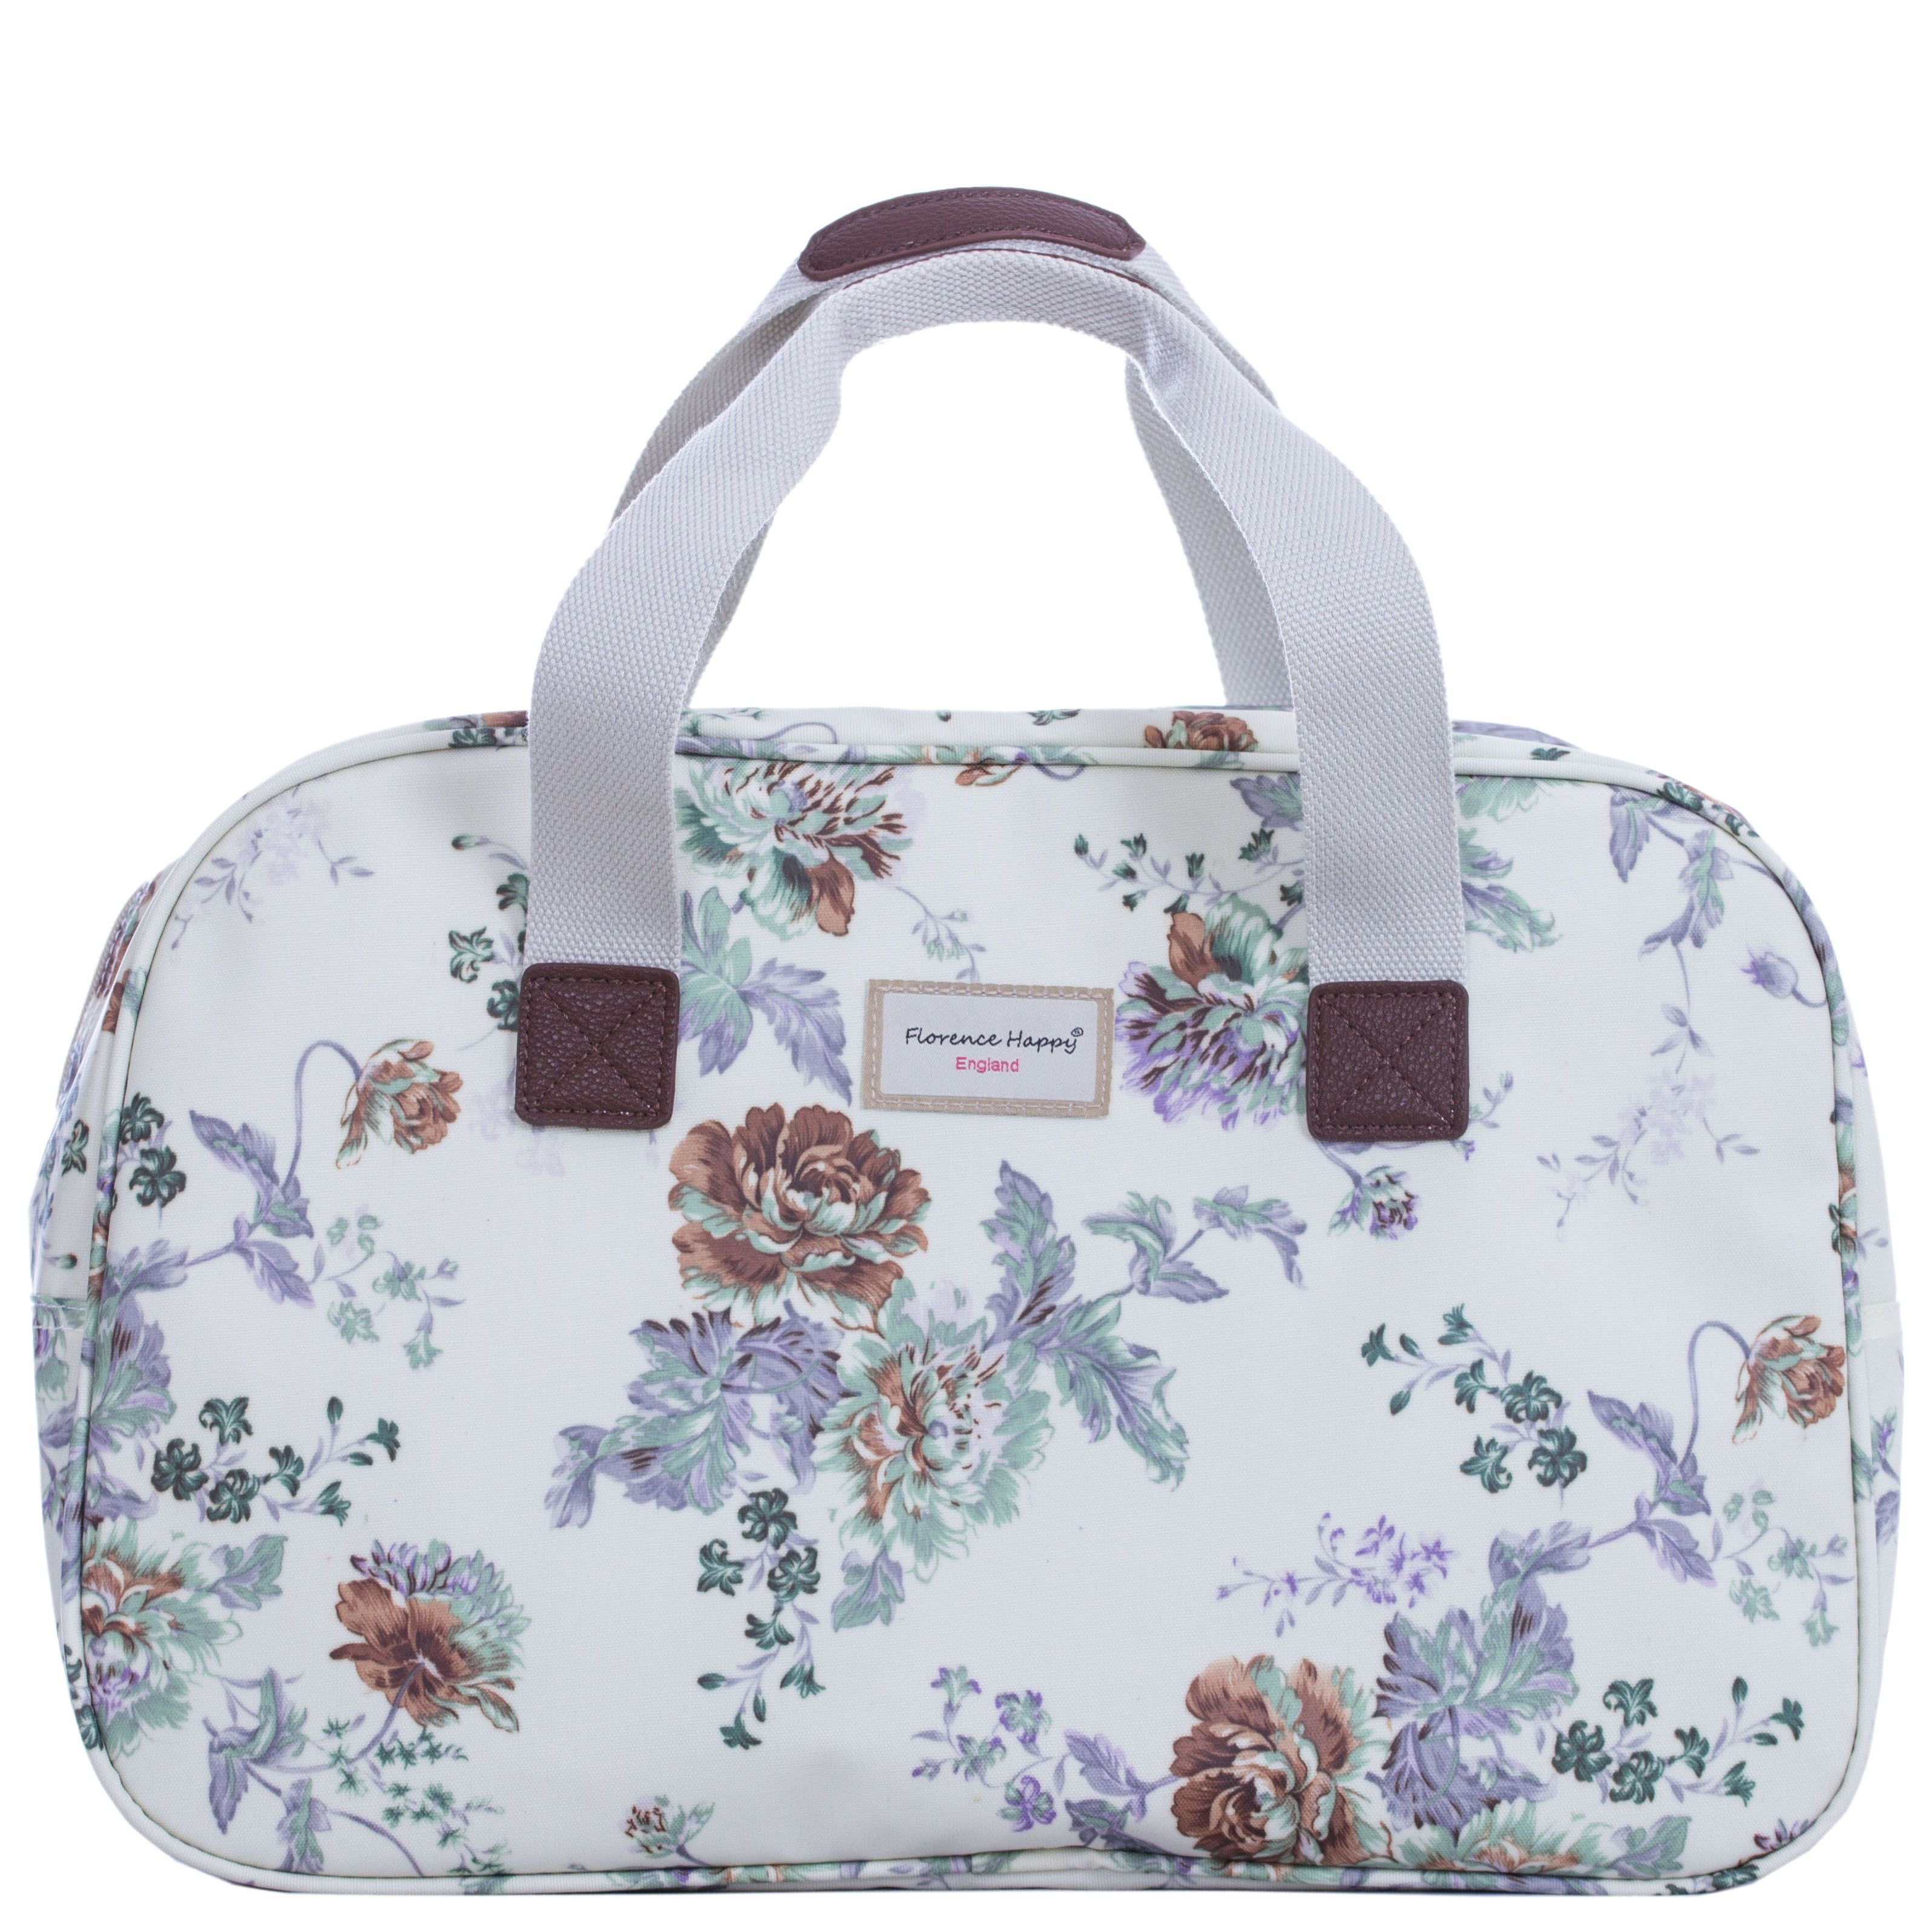 Hampstead Flowers Oilcloth Holiday Bag